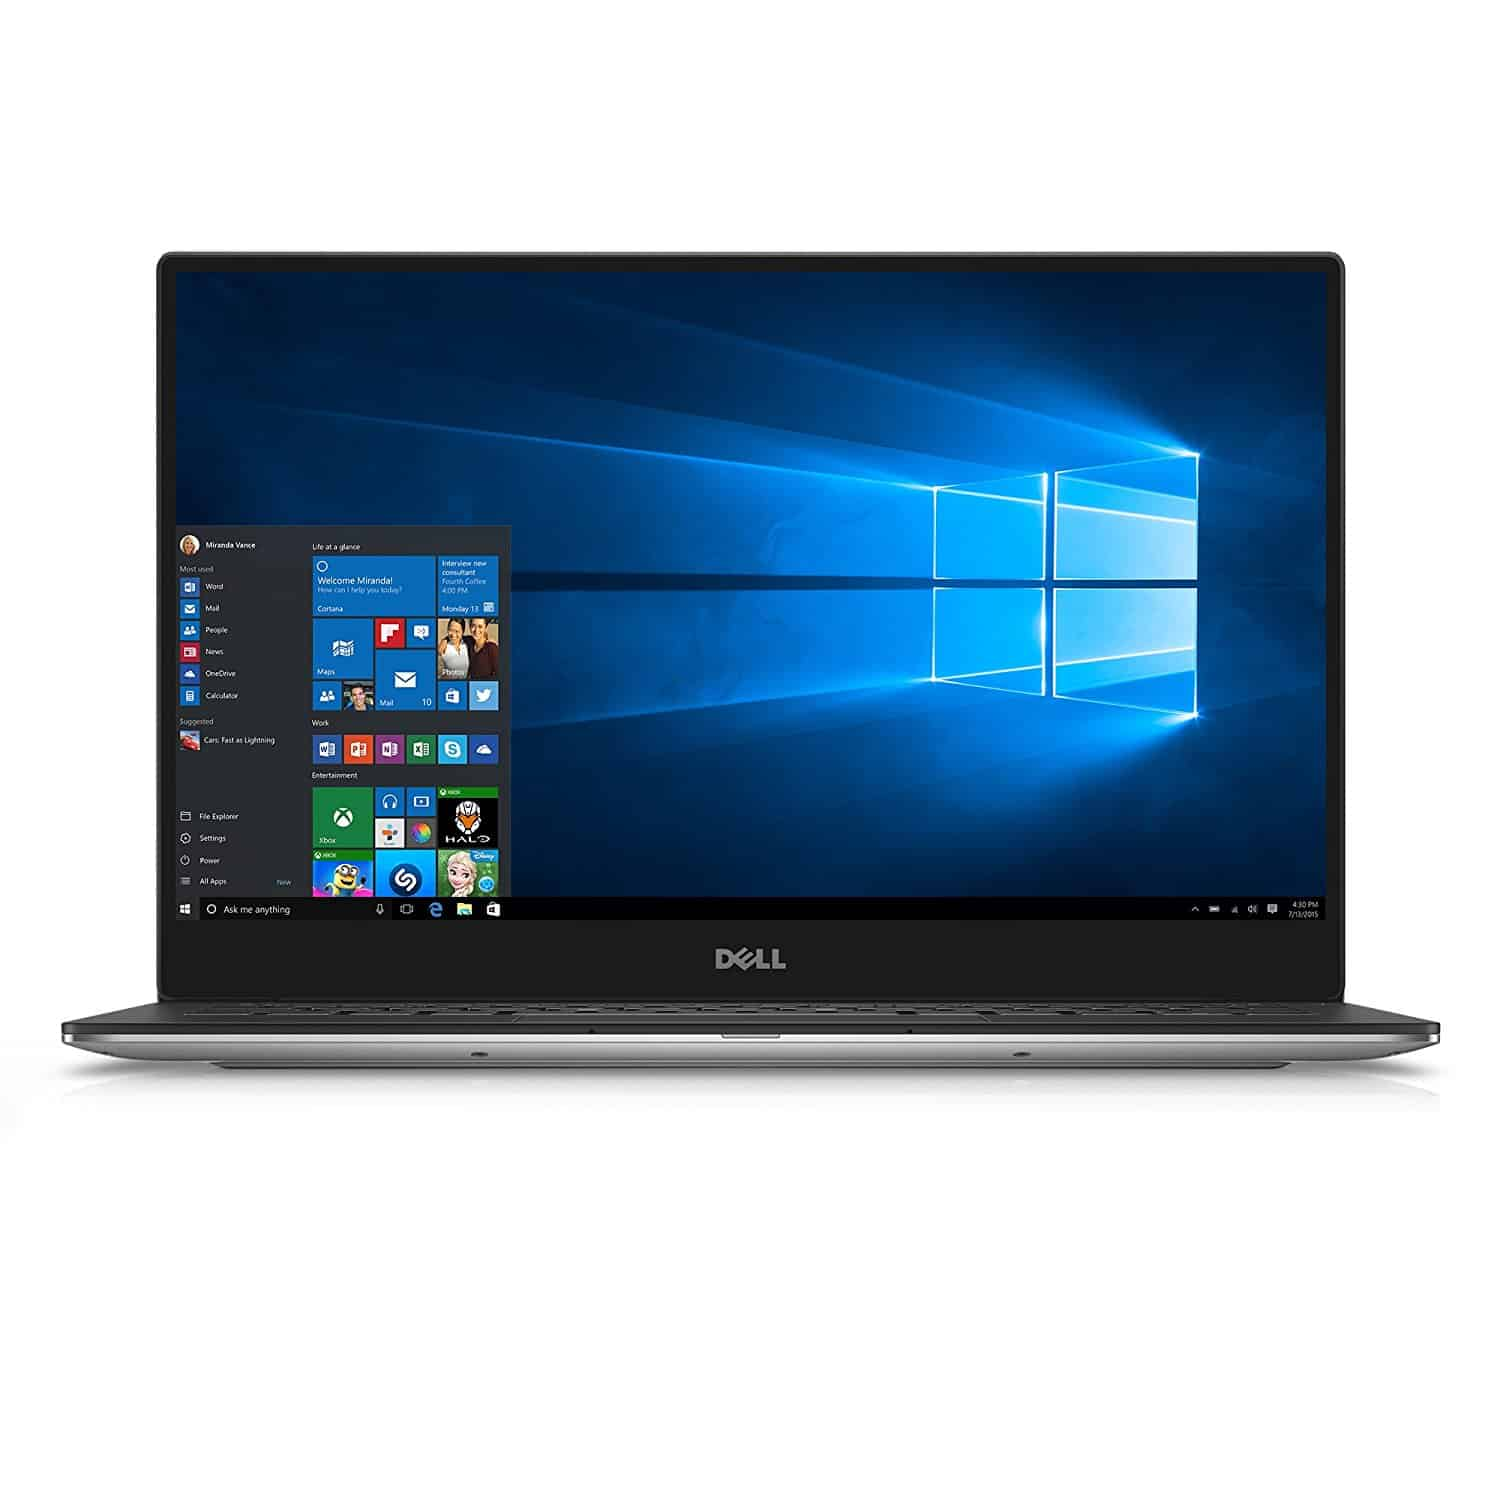 Dell XPS9360-4841SLV